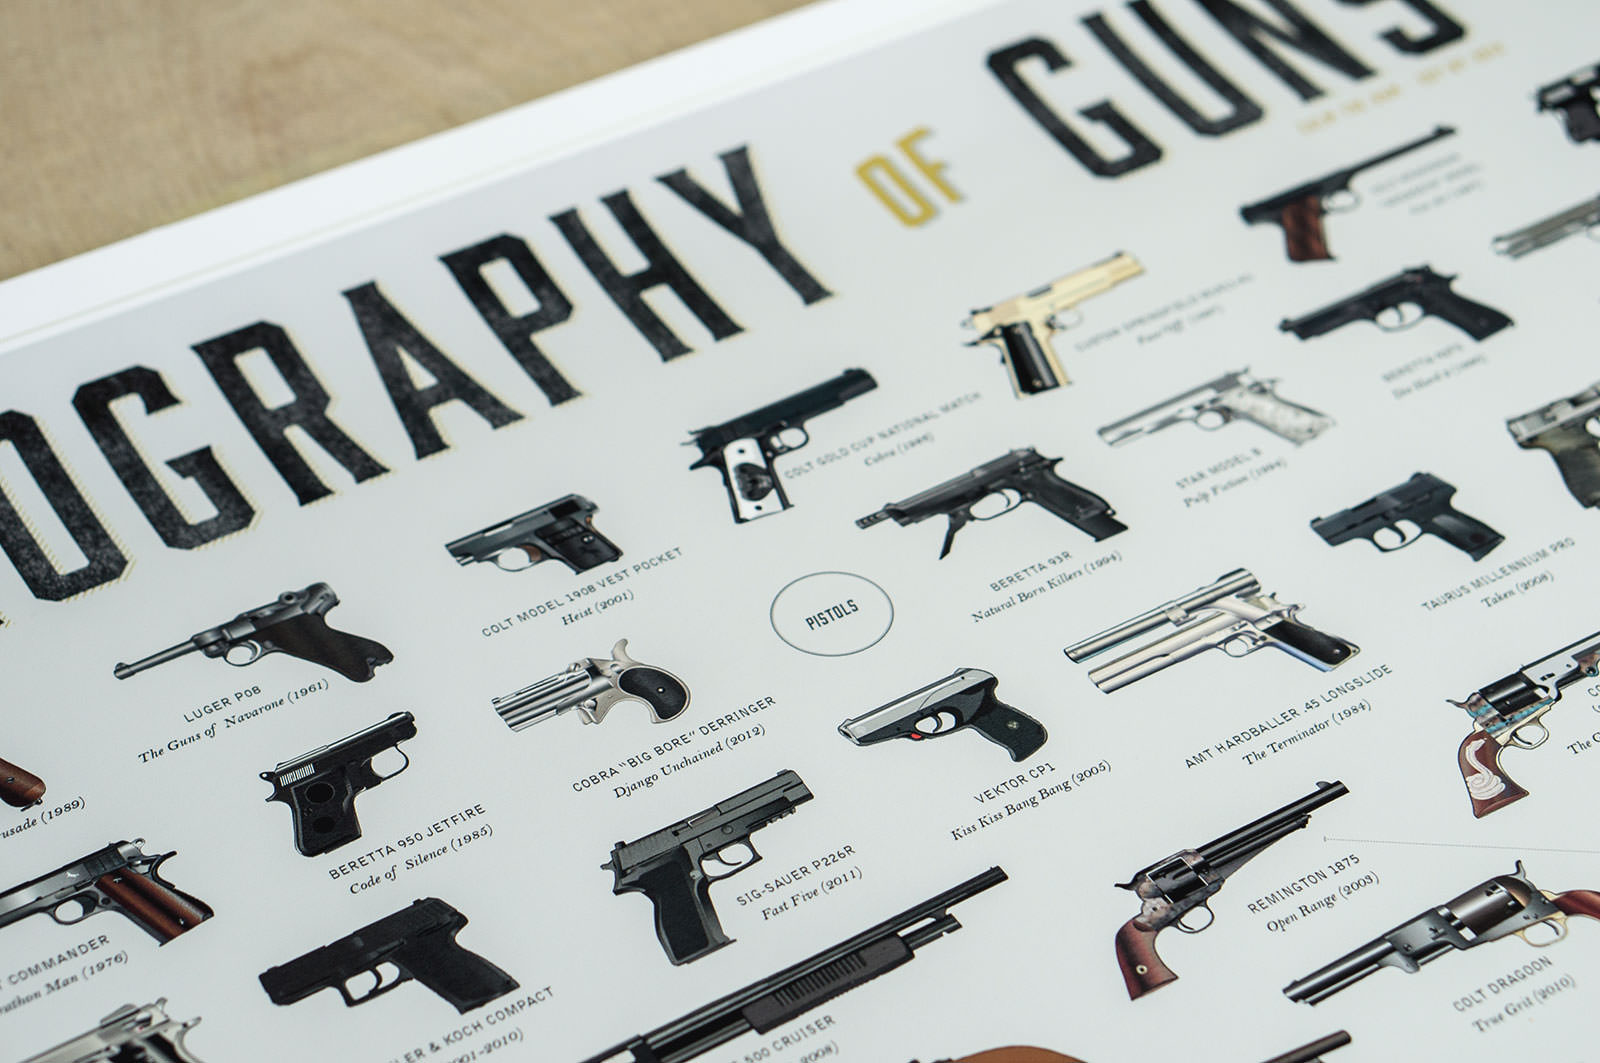 parallax-banner-The Filmography of Guns